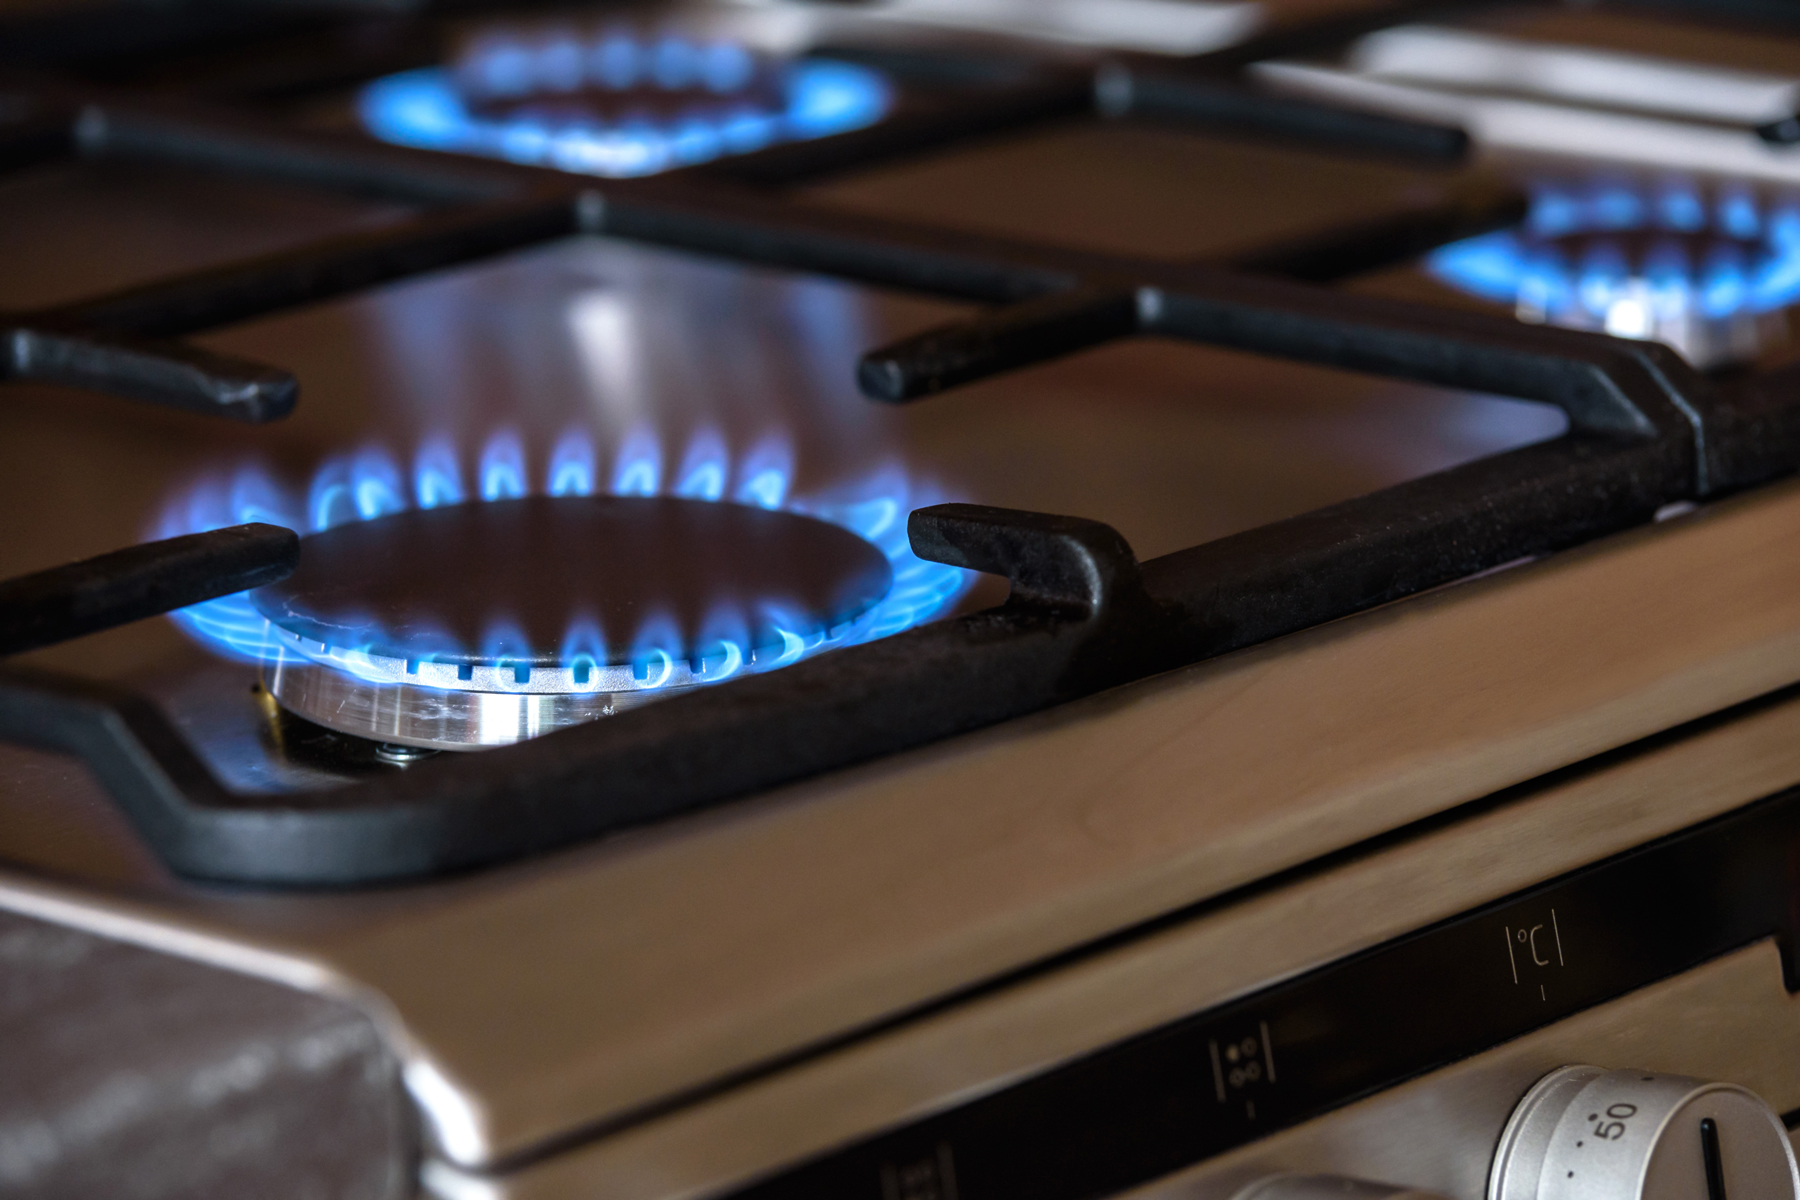 A lit gas hob in a motorhome kitchen